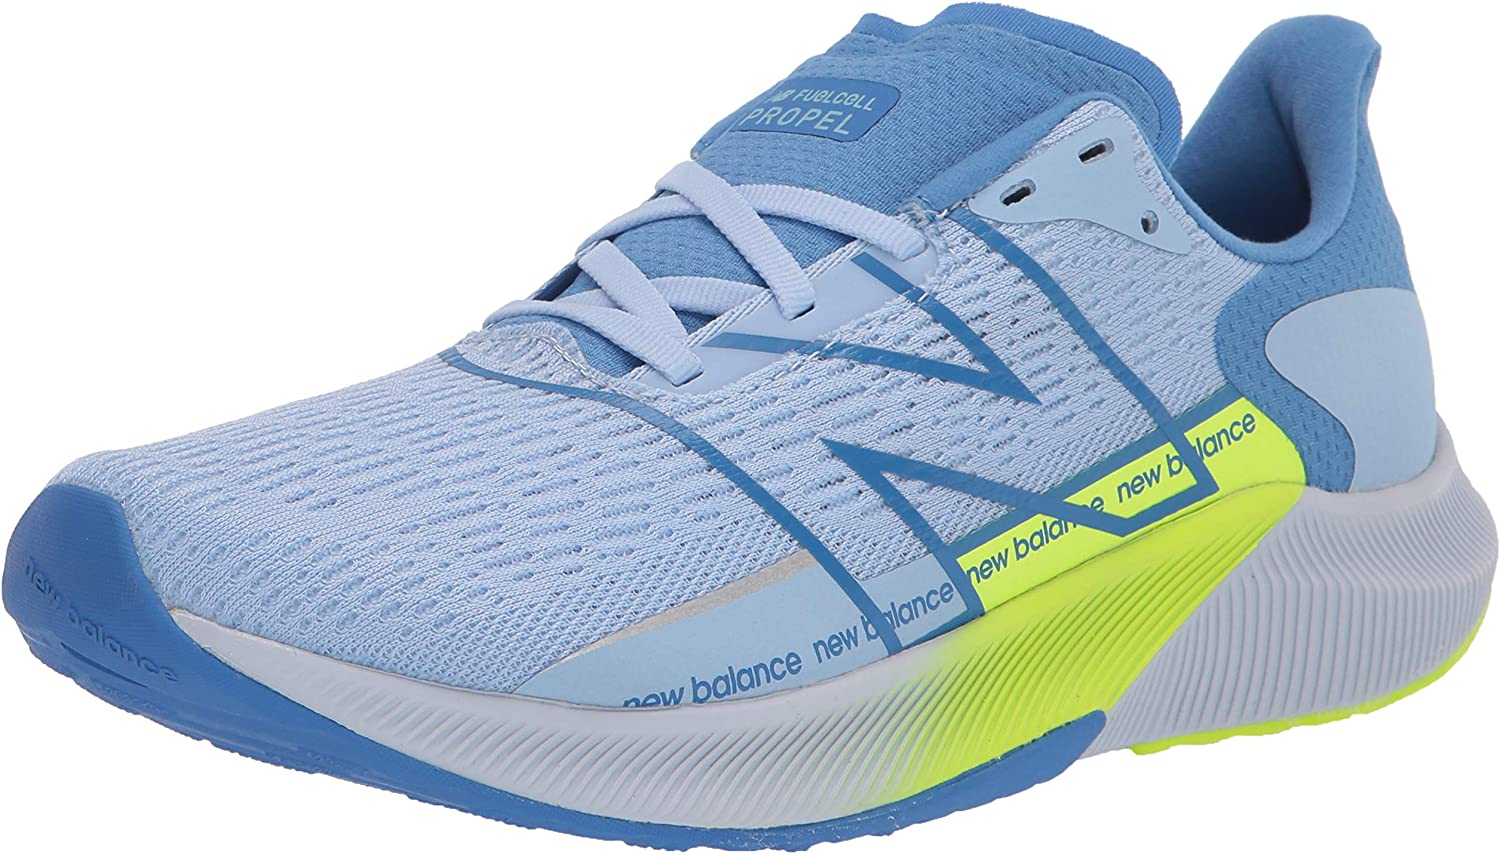 New Topics on TV Balance Women's Low price FuelCell Shoe Running V2 Propel